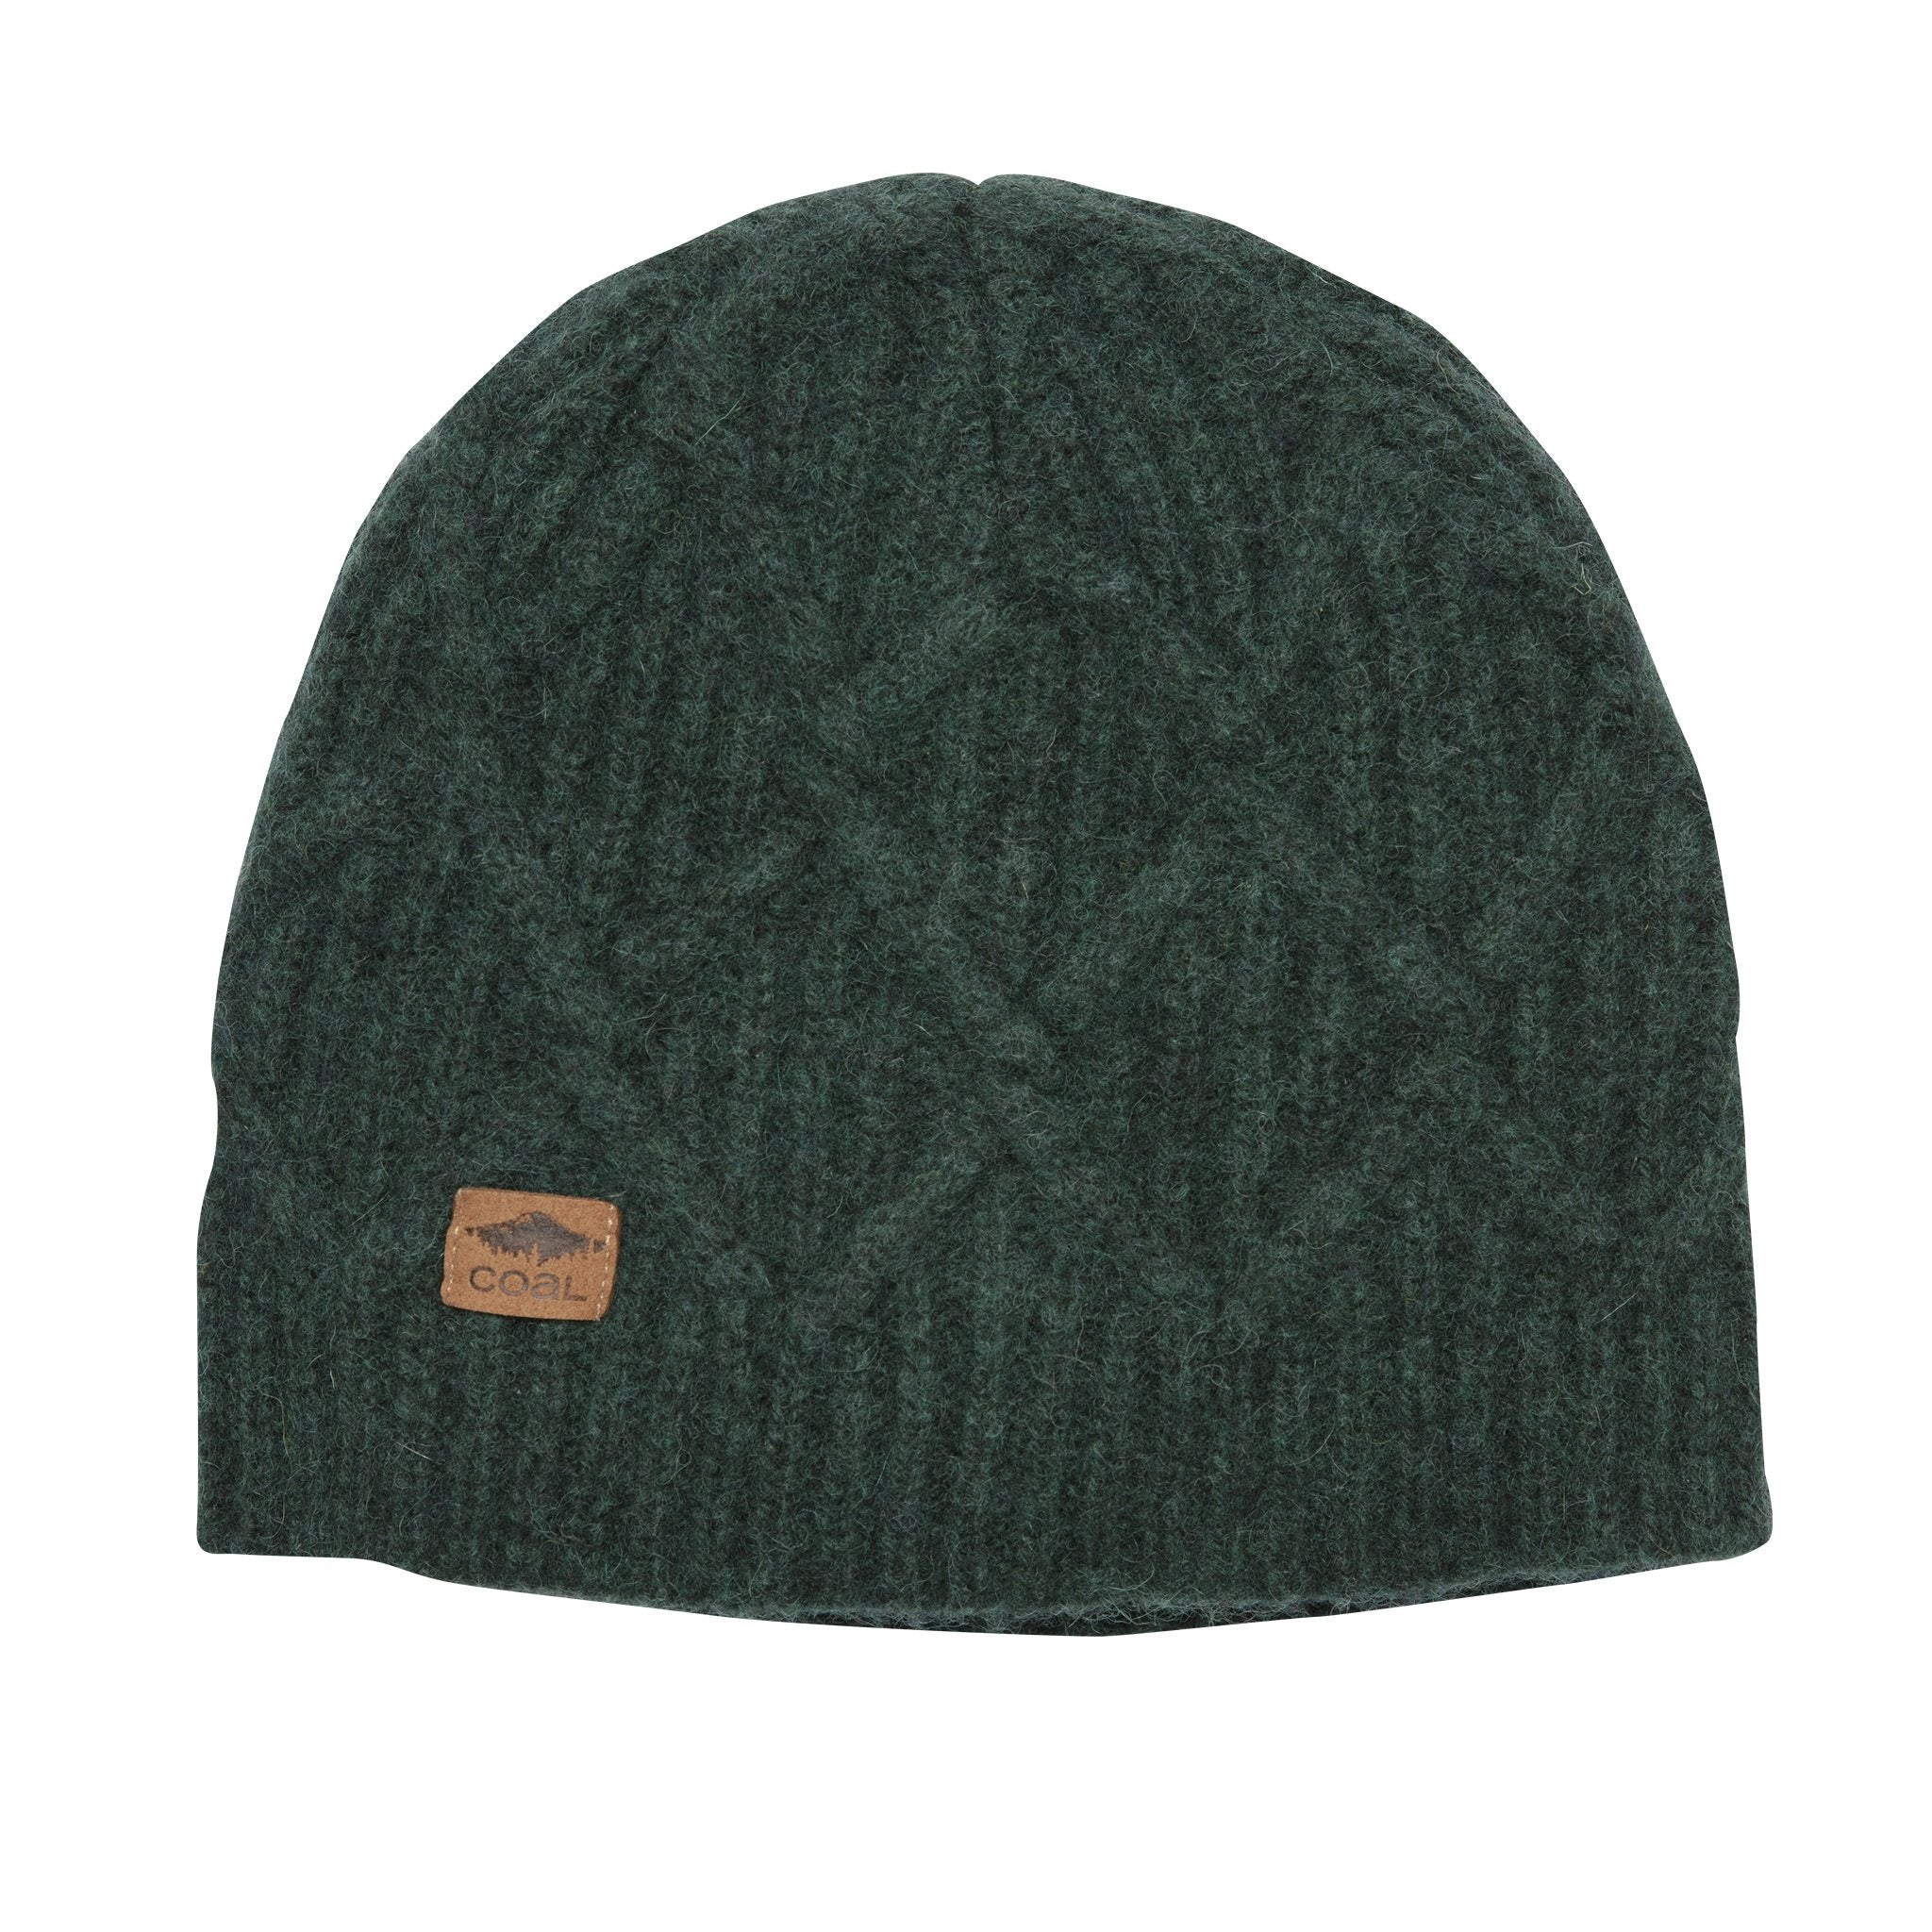 Coal Yukon Cable Knit Wool Patterned Beanie